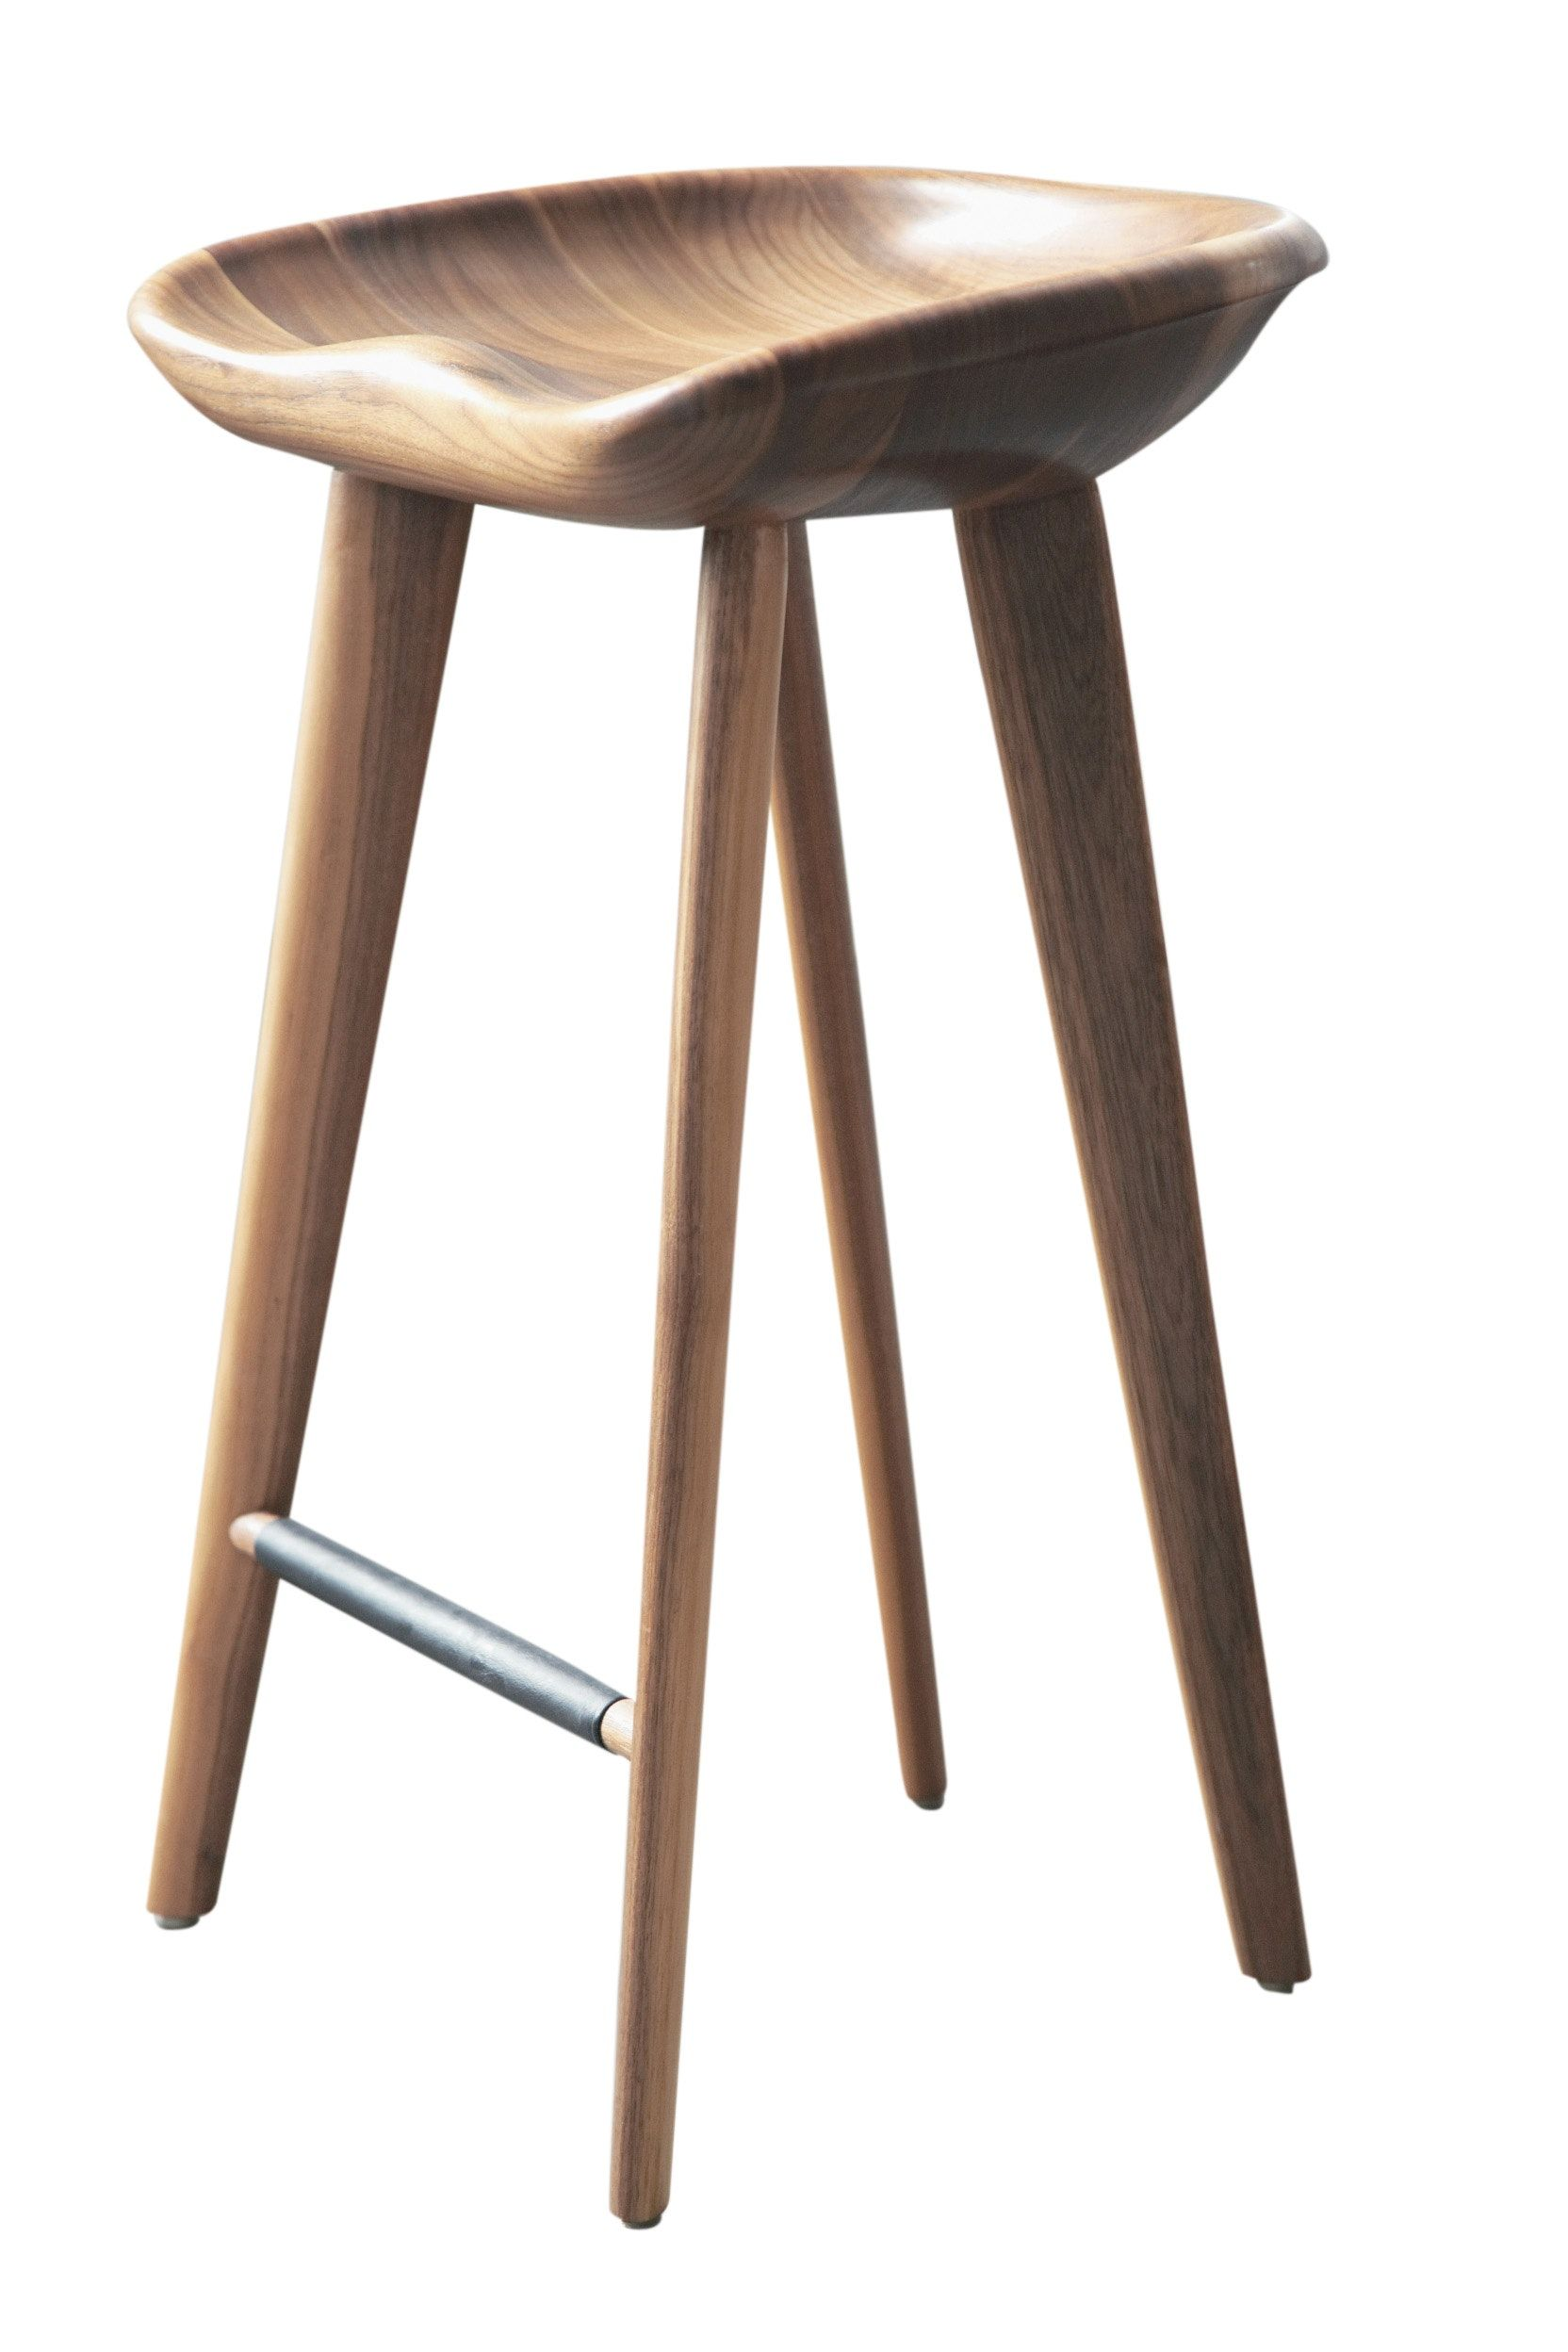 Buy Tractor Stools By BassamFellows   Made To Order Designer Furniture From  Dering Hallu0027s